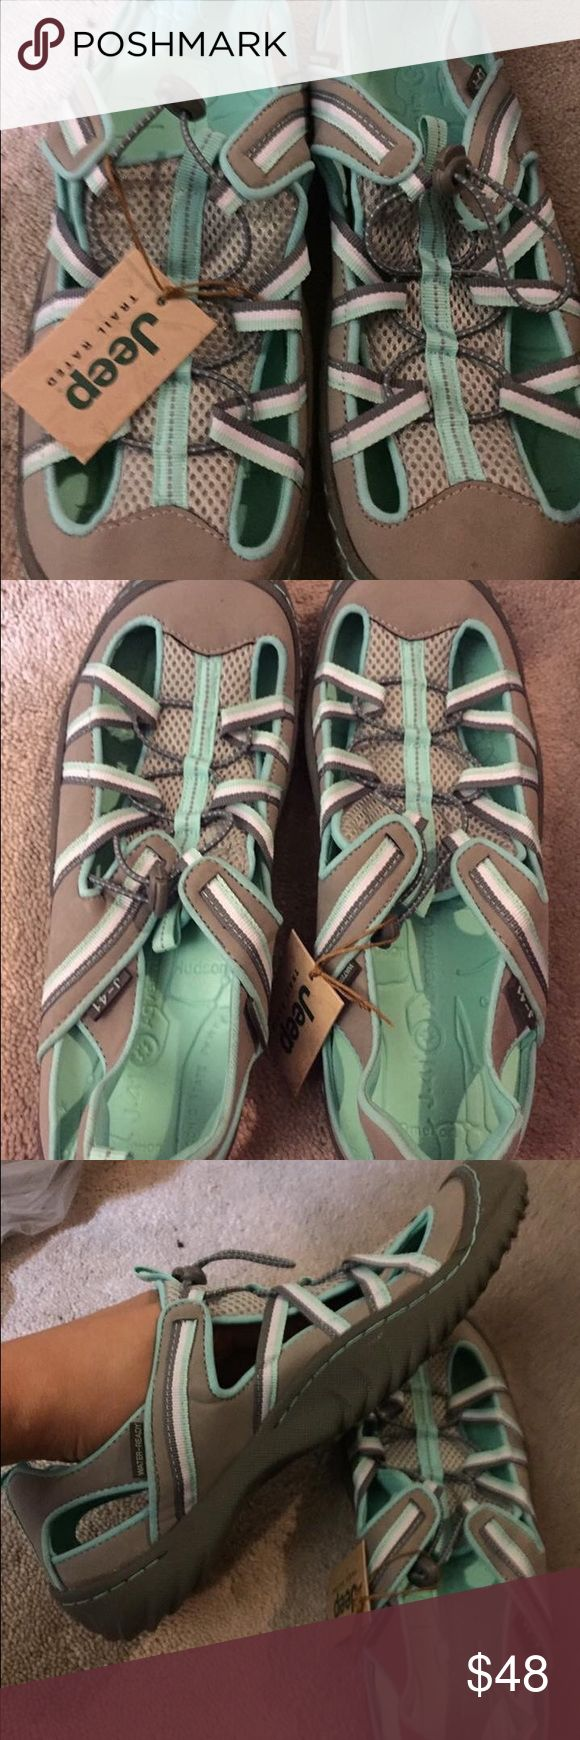 Brand new Jeep J41 sandals hiking water beach. 8.5 Jeep sandals hiking water beach shoes sandals BRAND NEW, never worn 8.5 Jeep  J41.  Green, tan. Just beautiful jeep Shoes Sandals